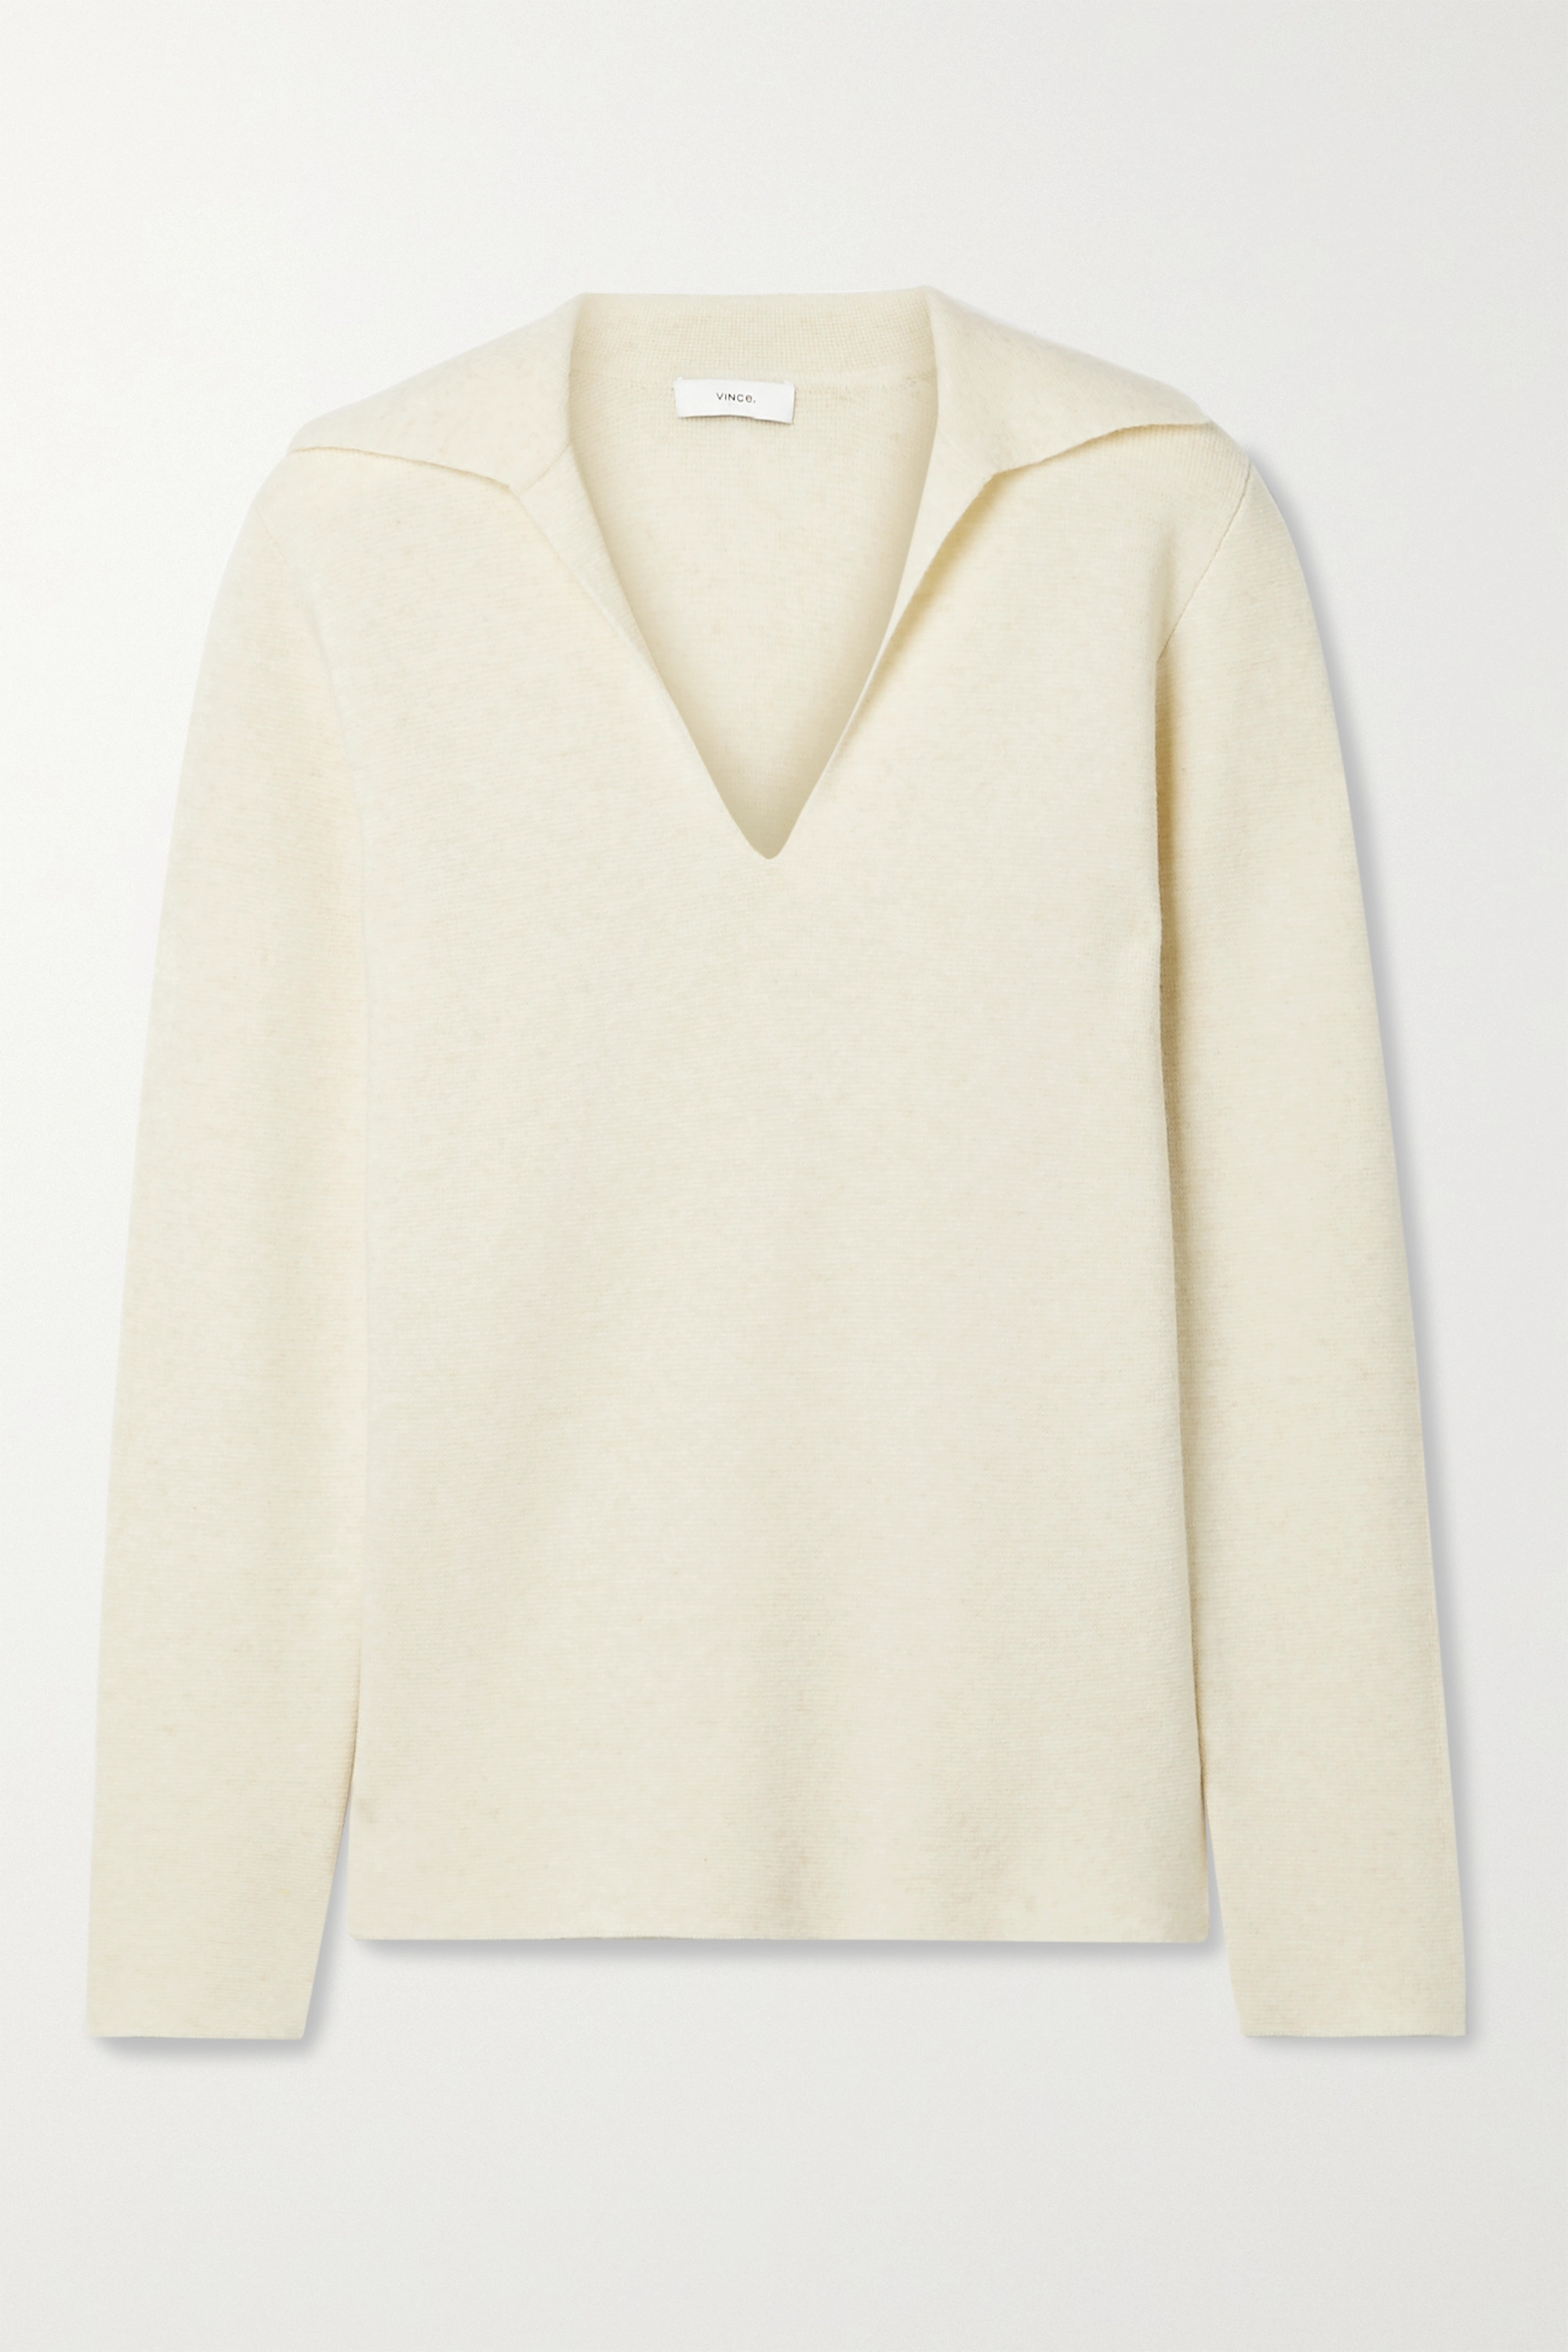 Vince Wools WOOL AND CASHMERE-BLEND SWEATER